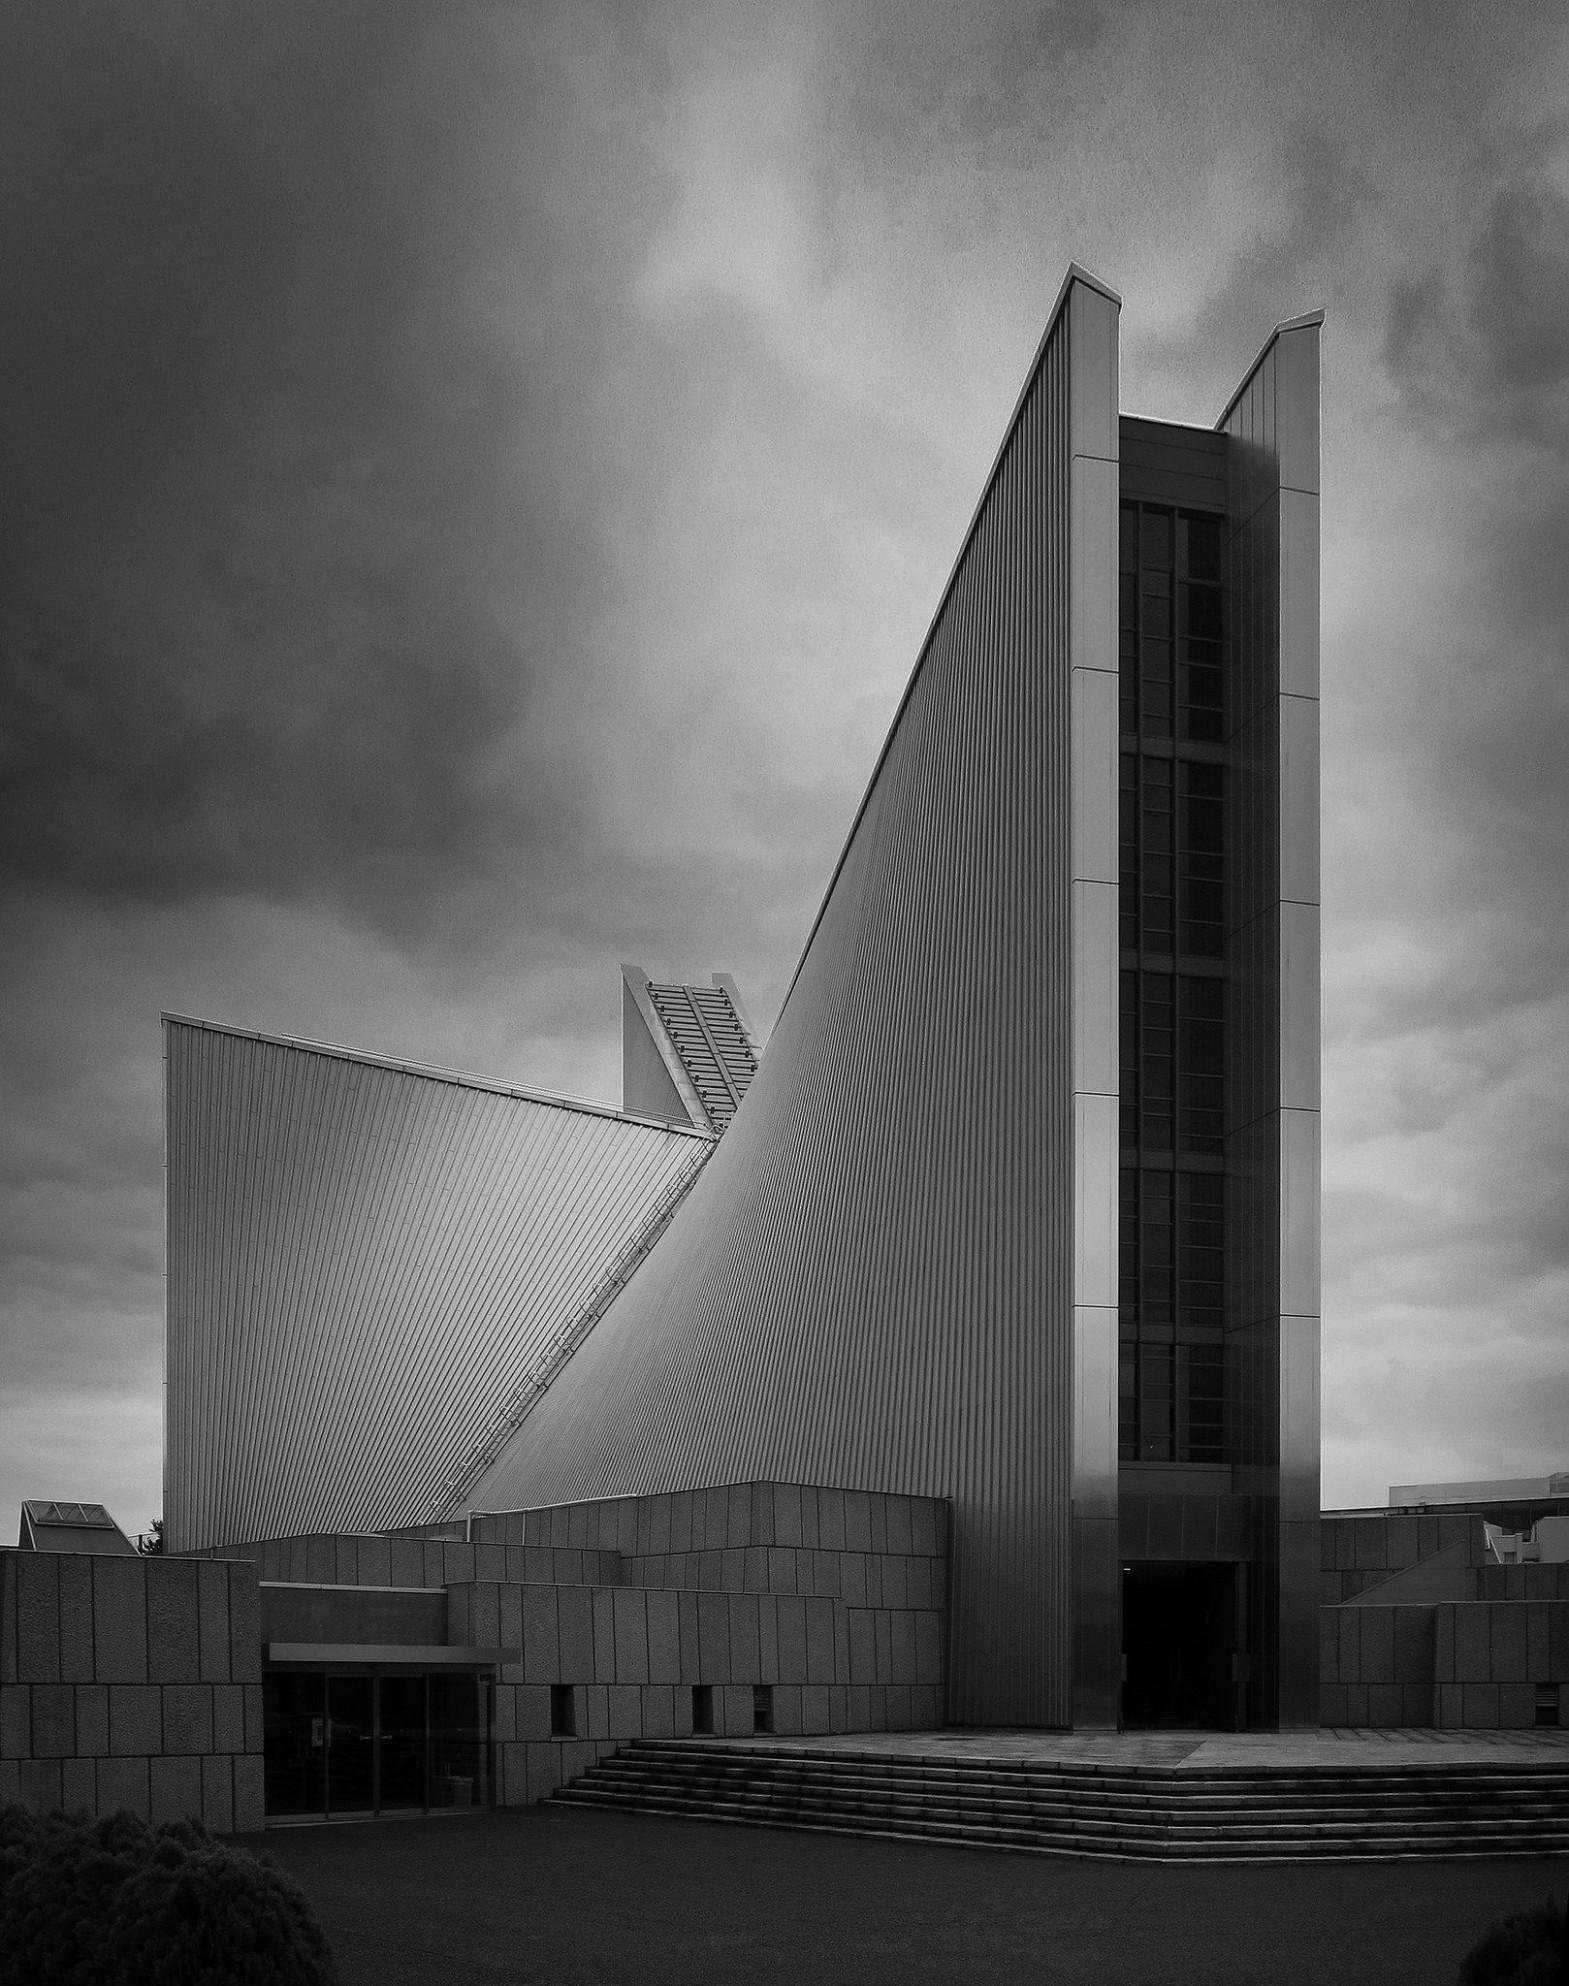 St. Mary's Cathedral | Kenzo Tange, Architecture And ..